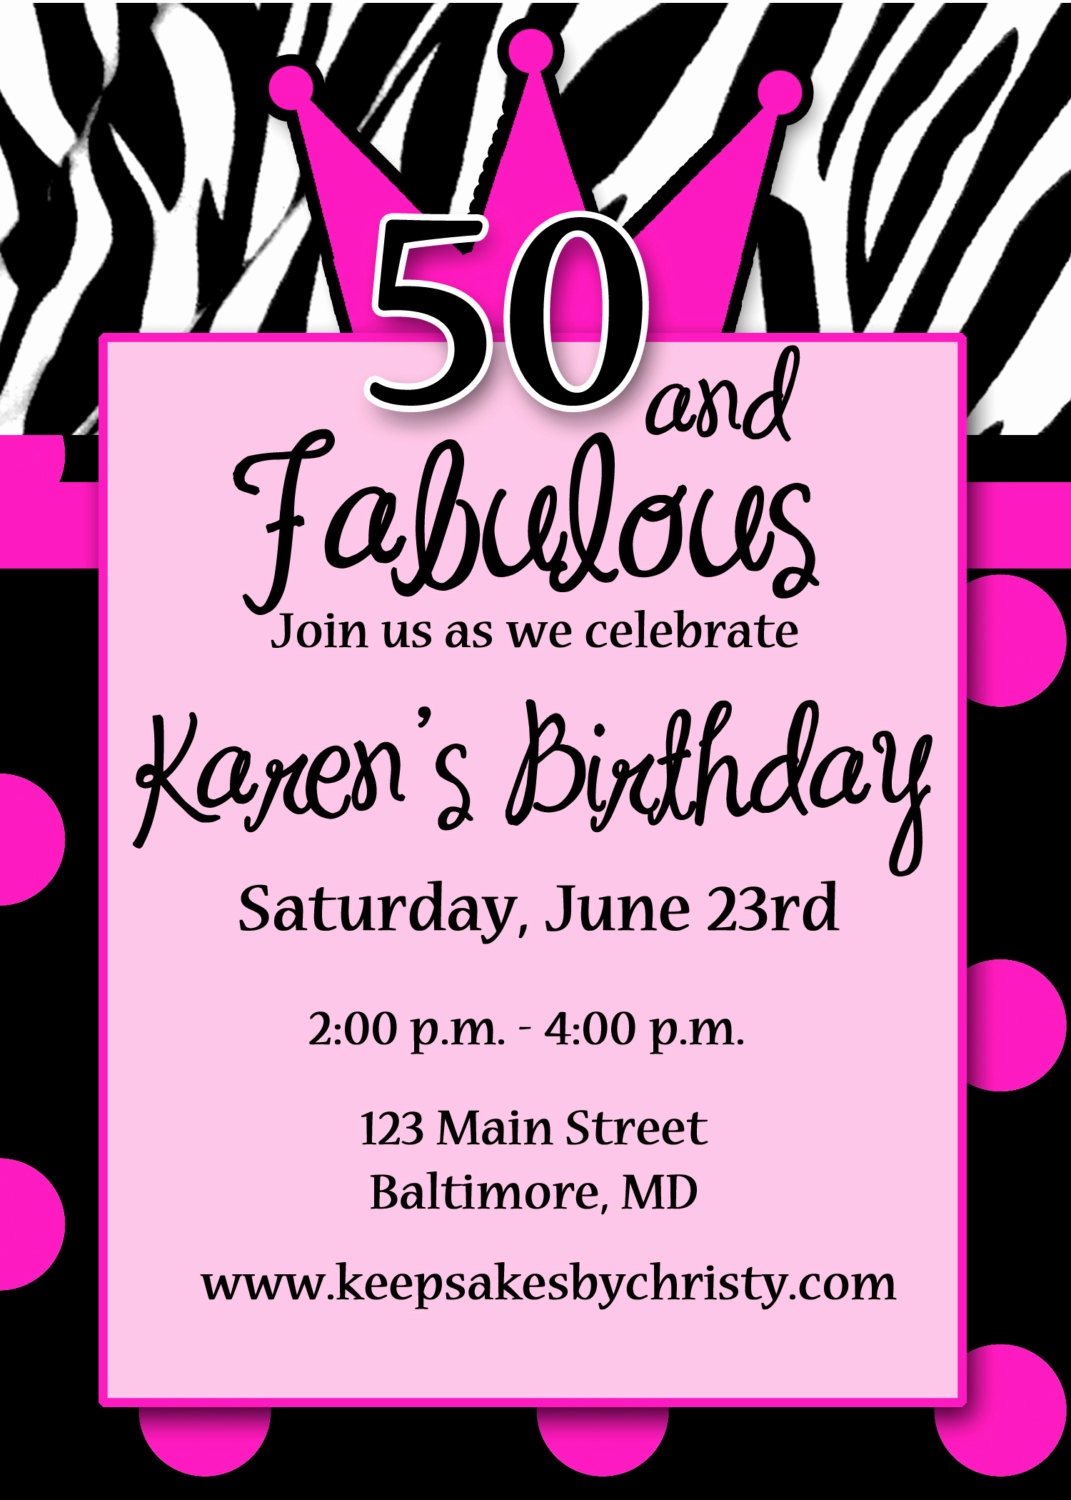 30th Birthday Invitation Sayings Luxury 30th Birthday Quotes for Invitations Quotesgram